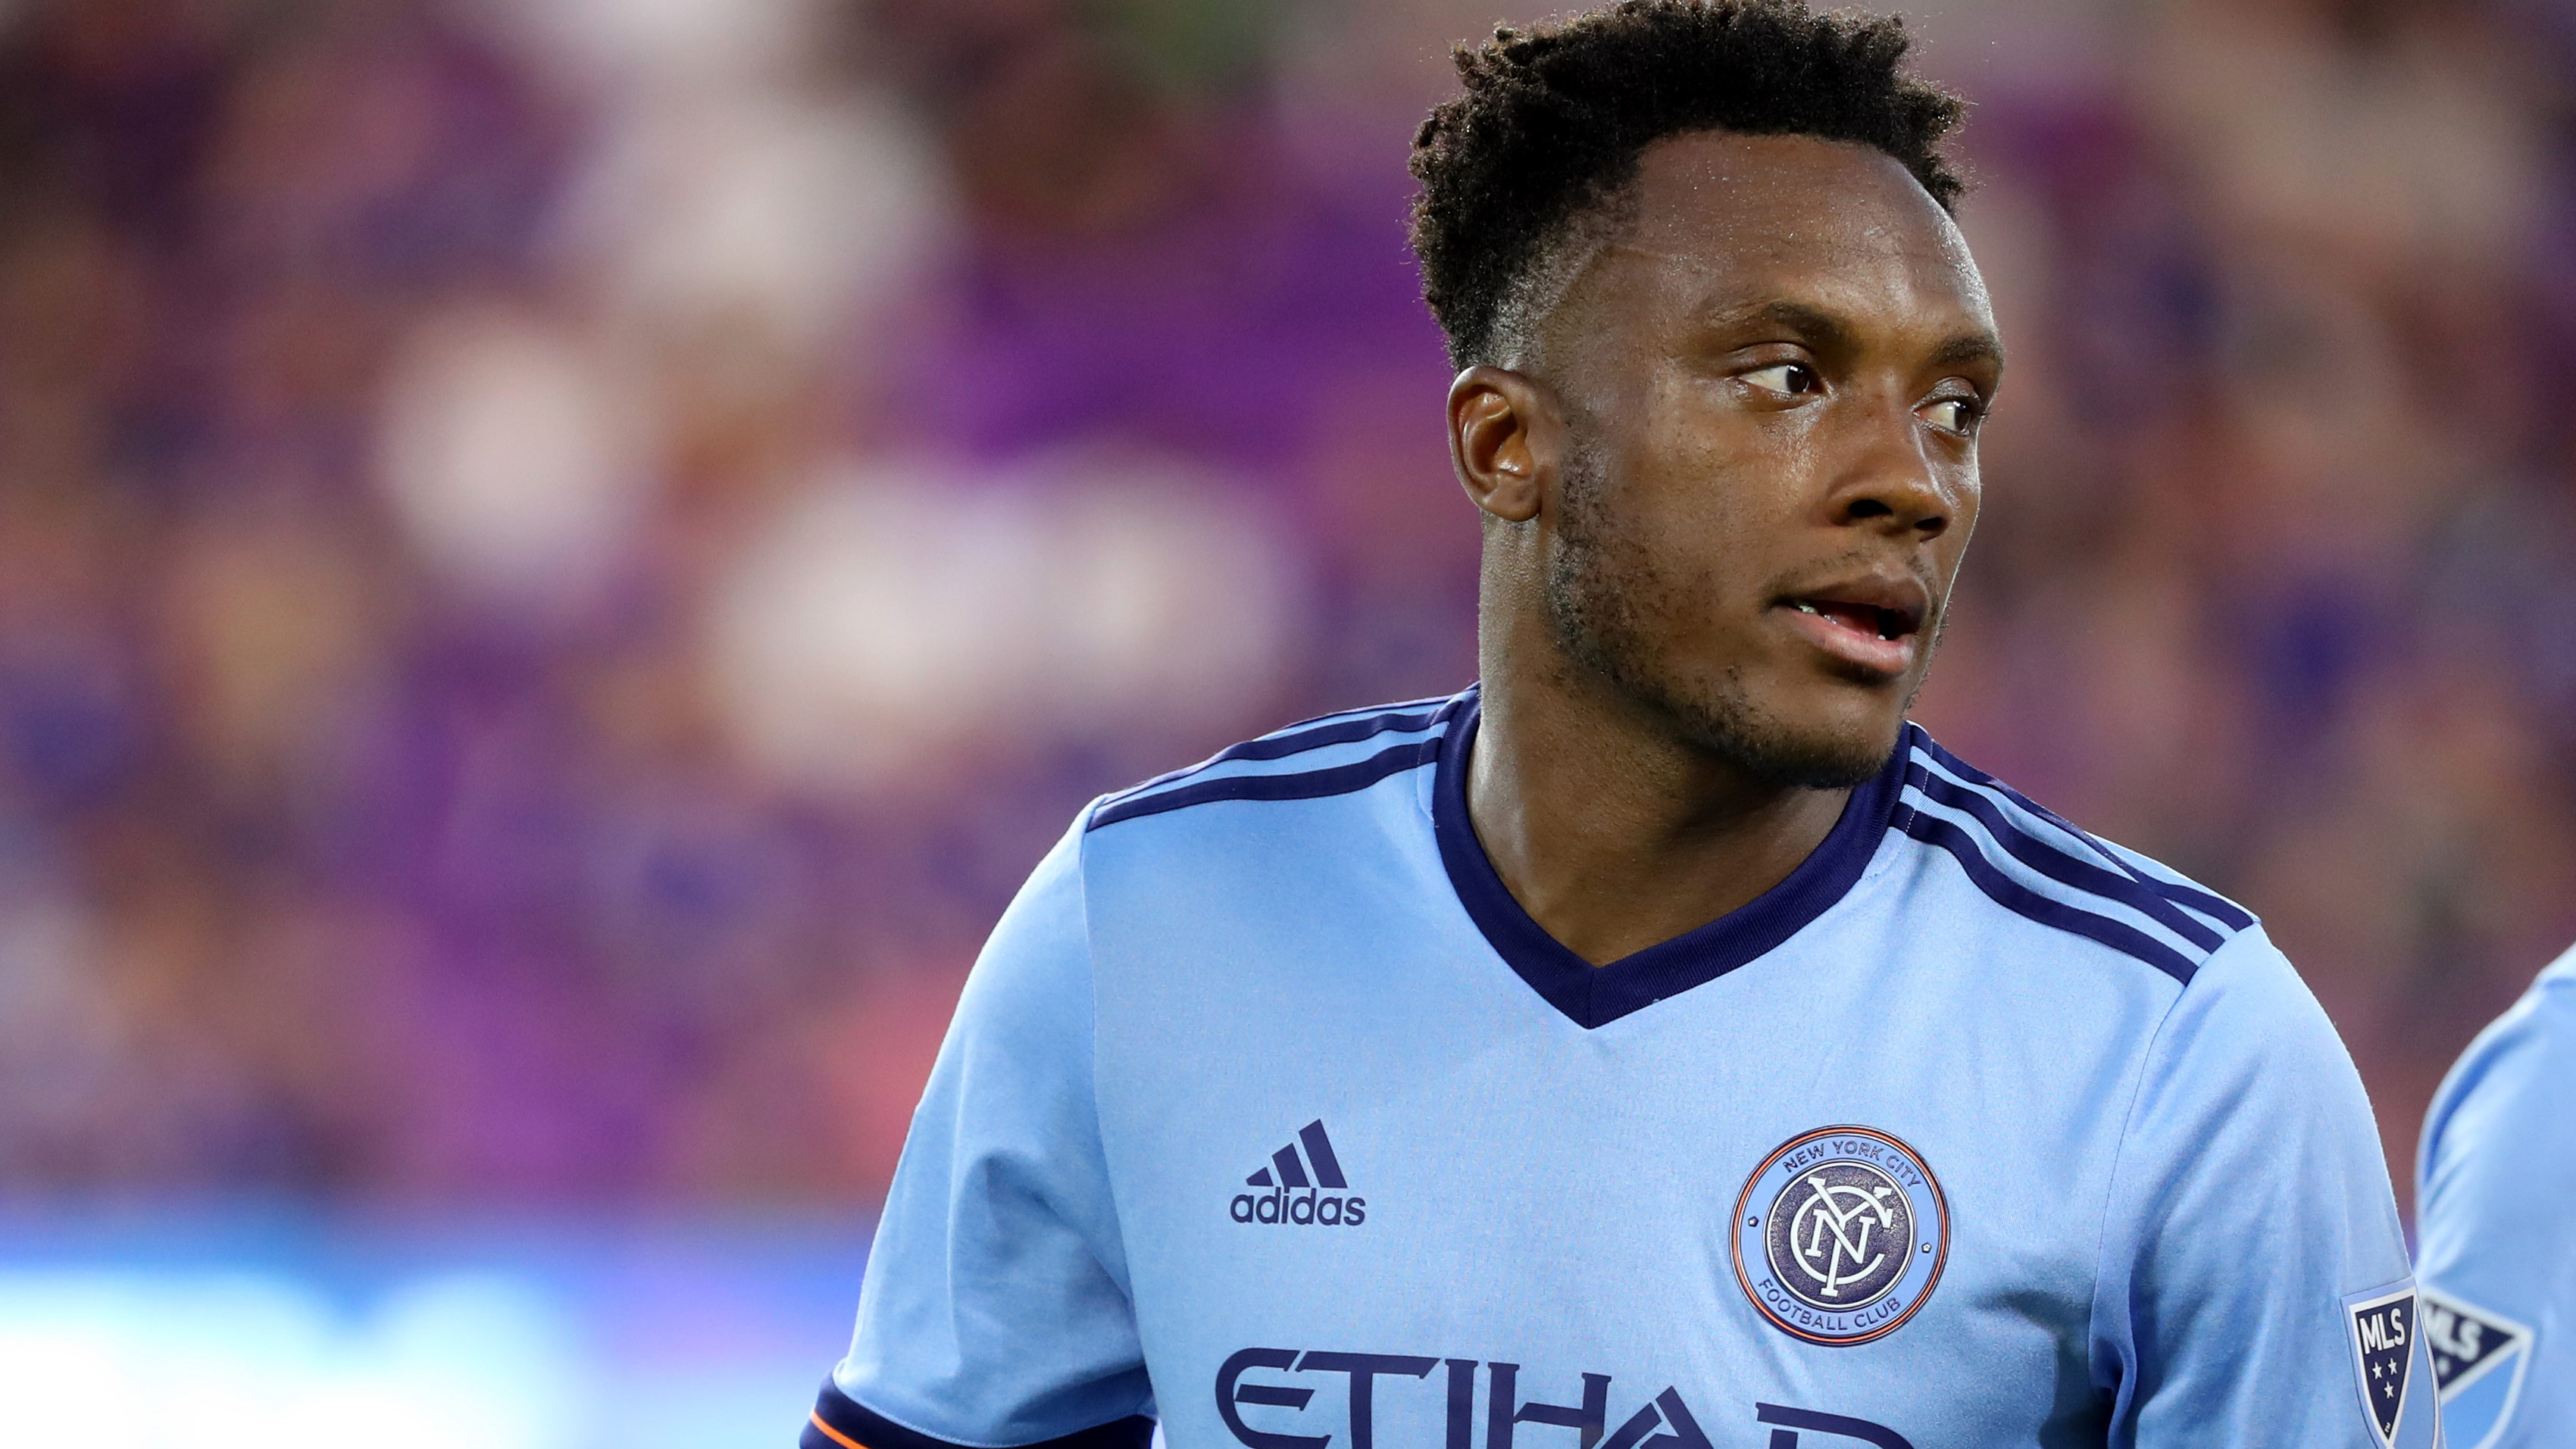 Sporting KC signs defender Rodney Wallace and trades for forward Erik Hurtado